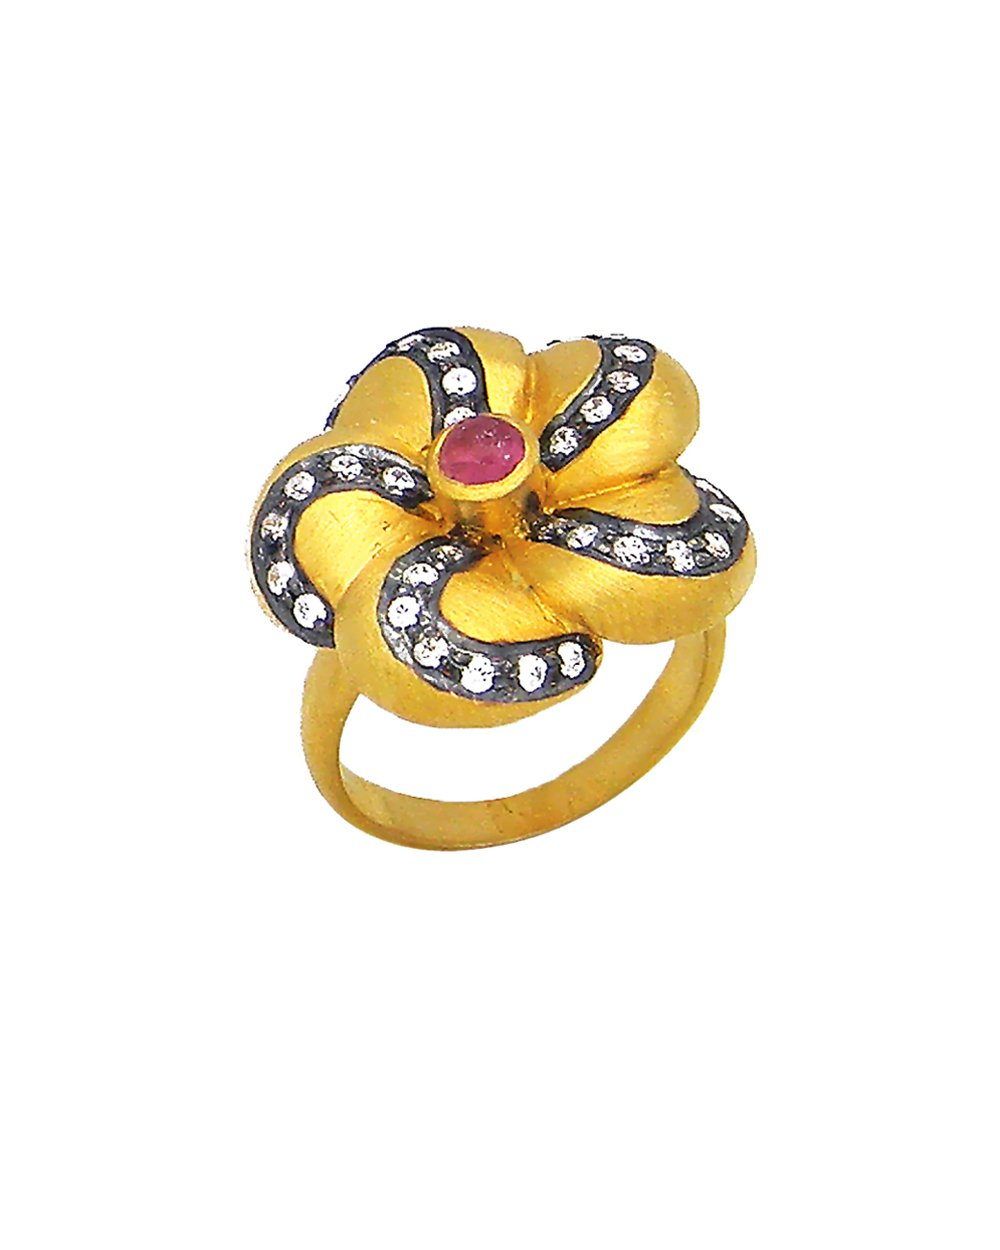 Flower Ring with Crystals in Gold Vermeil